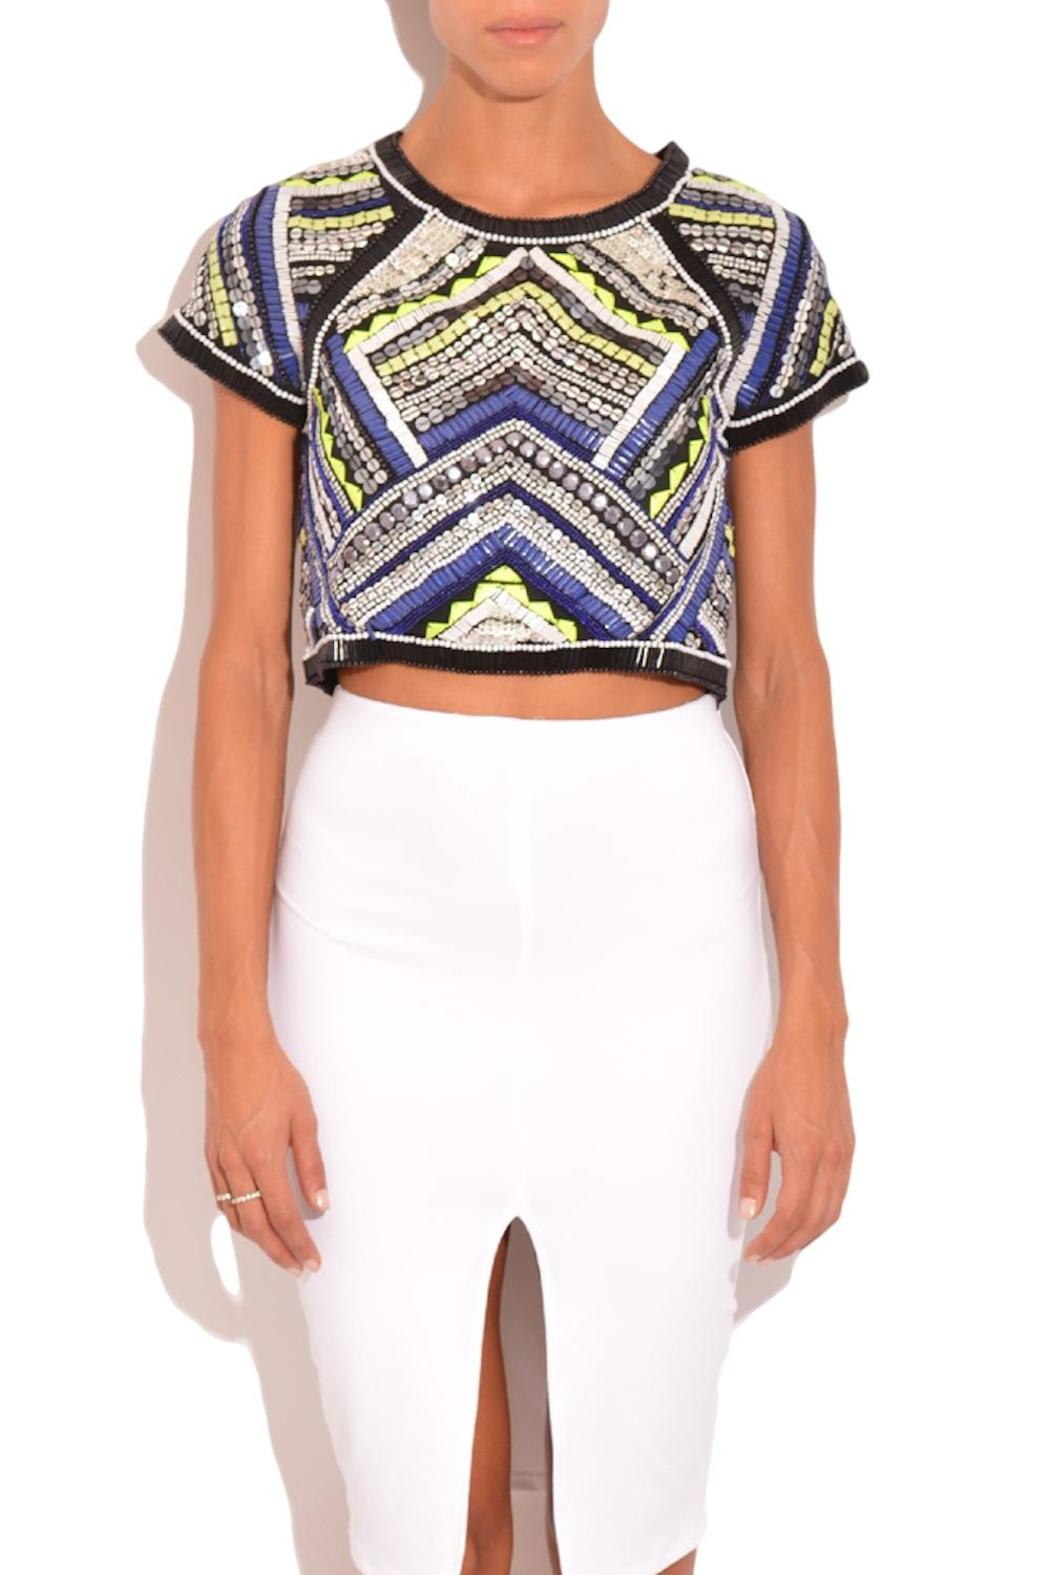 47a3c5500bc41 Parker Beaded Crop Top from Florida by Rhythm of Grace — Shoptiques